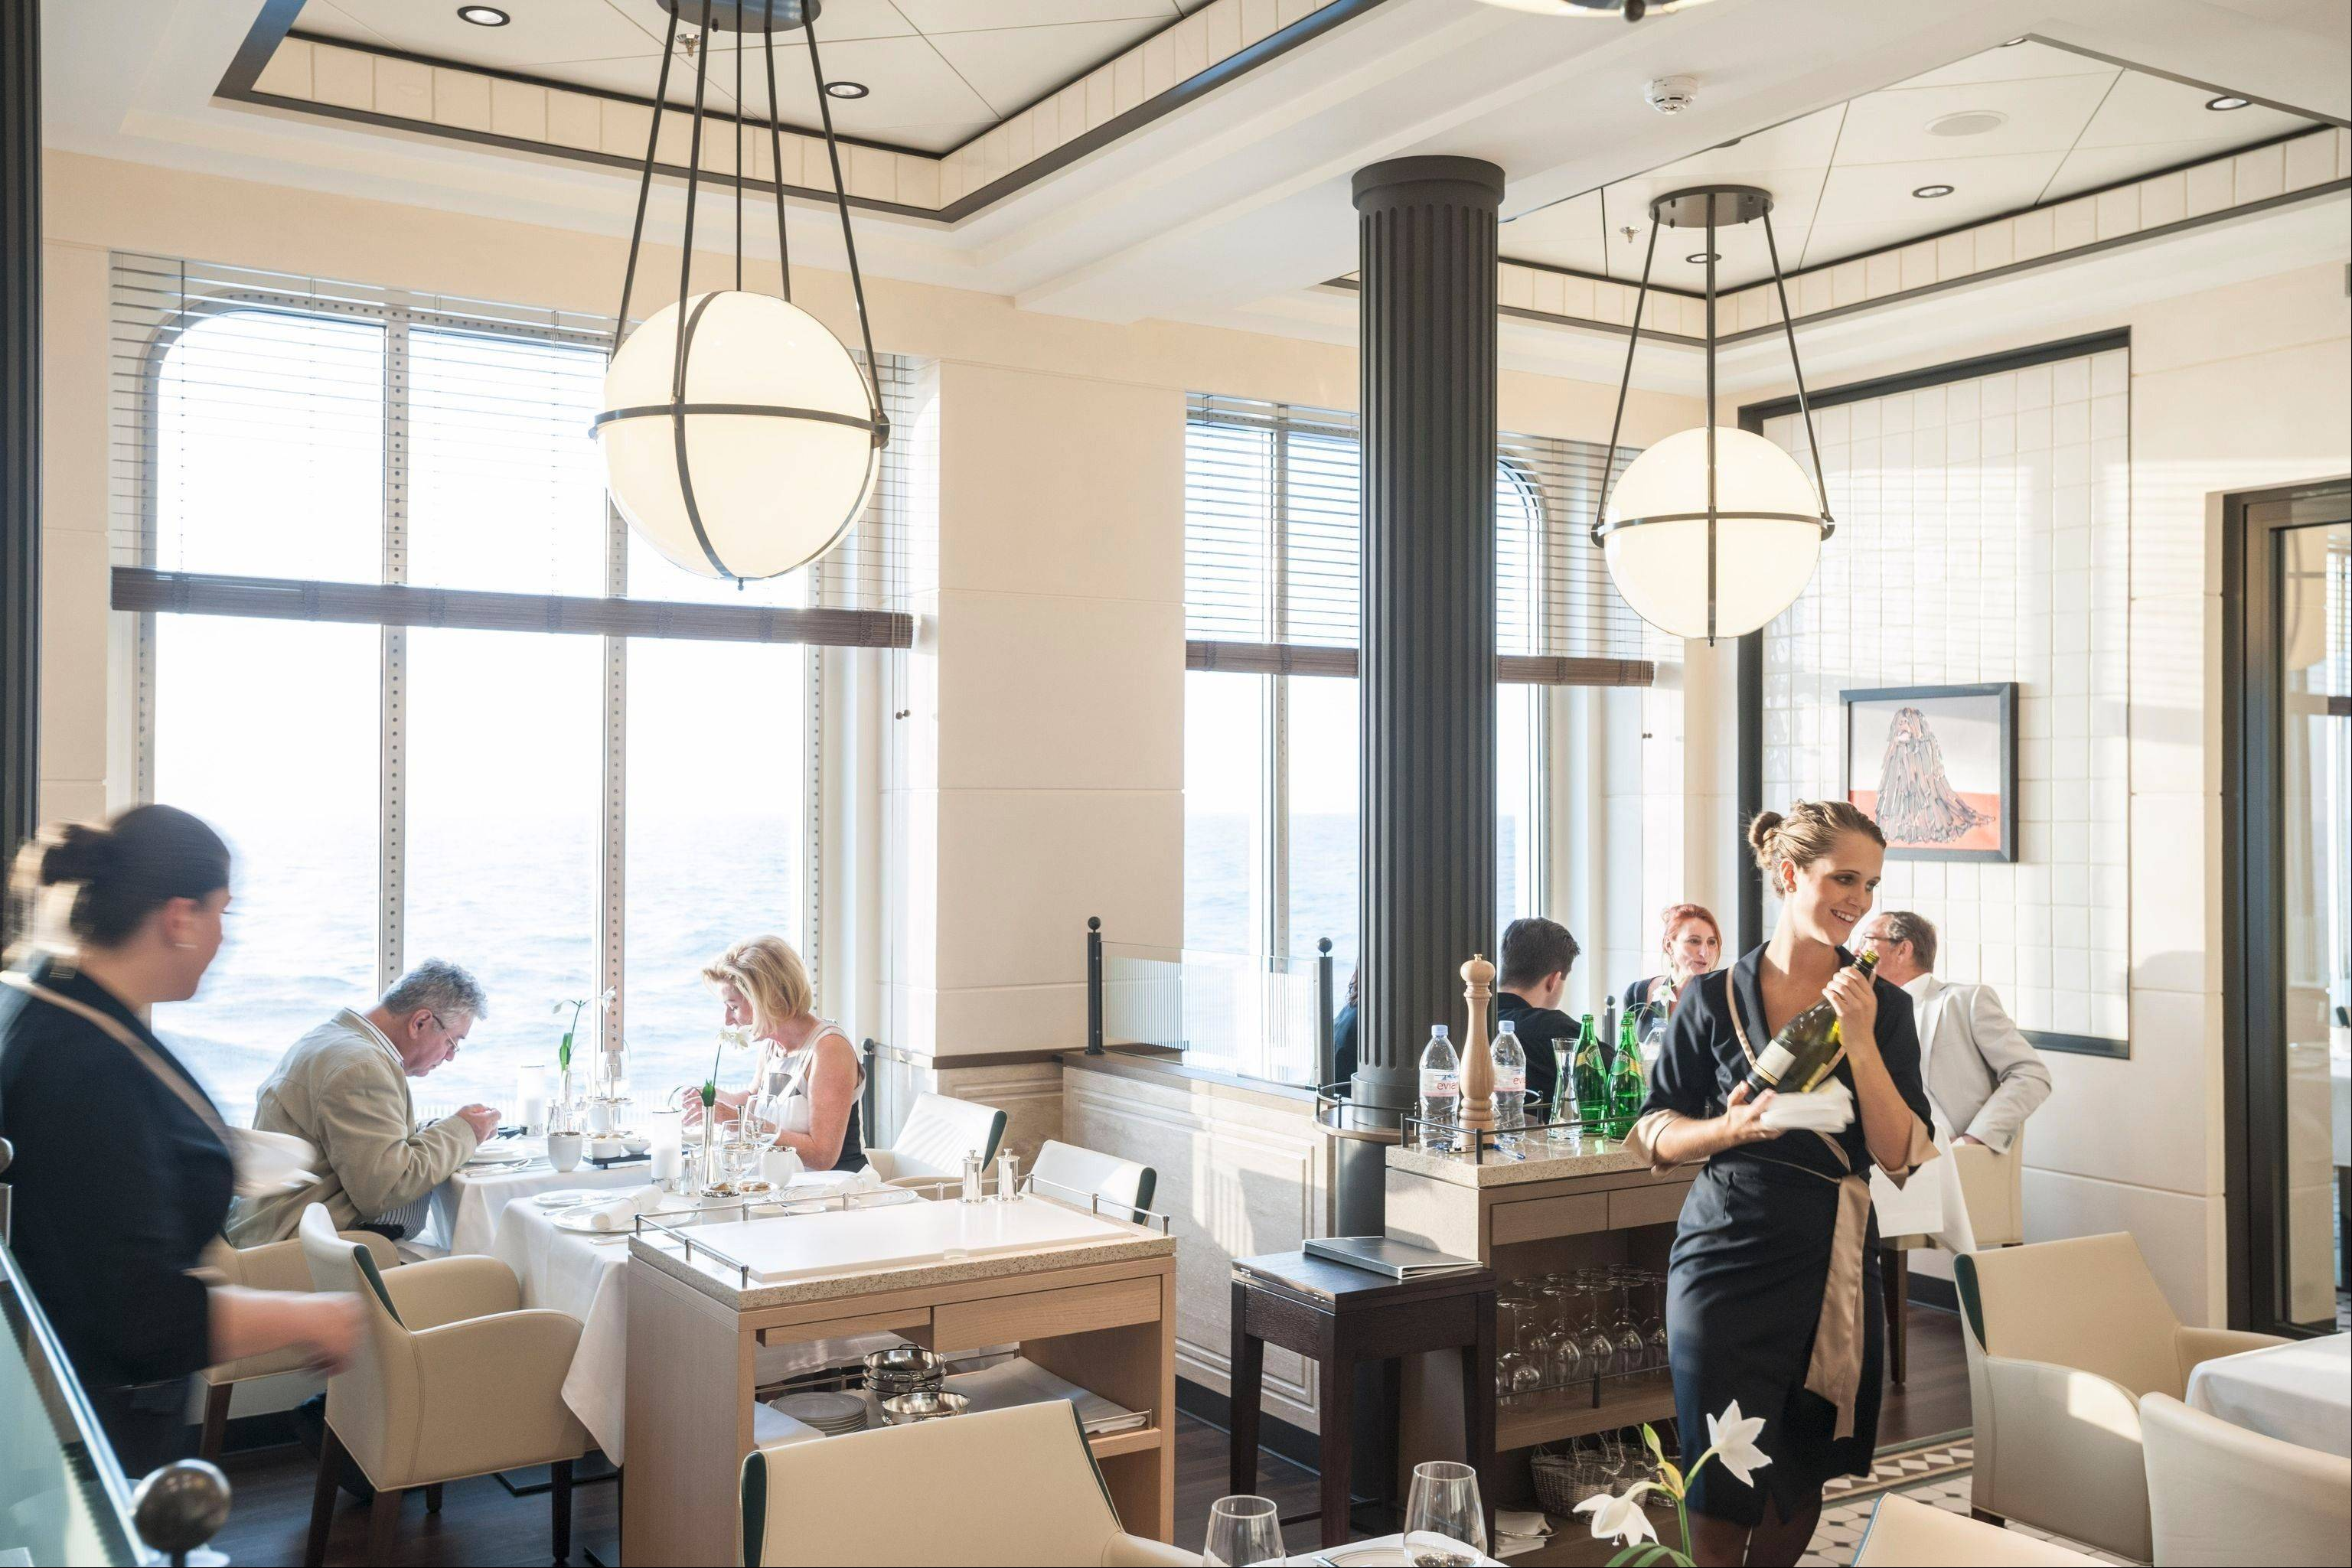 The Europa 2's French restaurant, Tarragon, has the look and feel of a Paris brasserie.